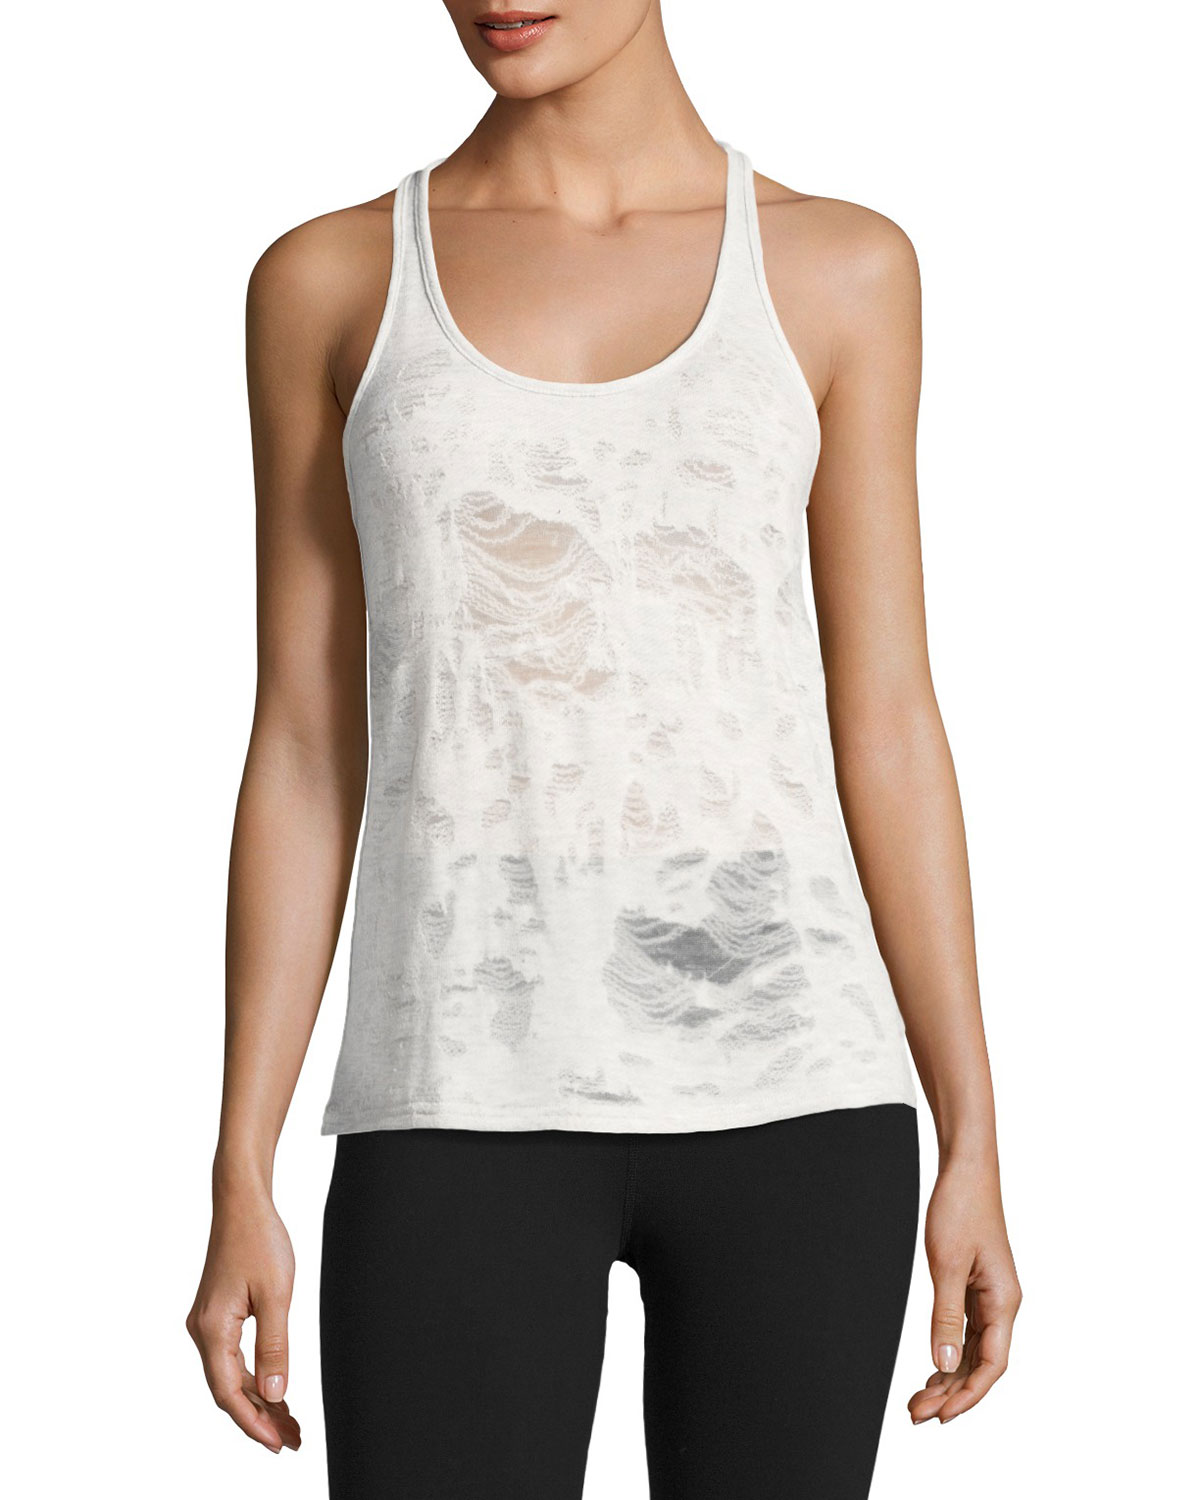 Visa Payment Online Genuine Online alo Pure Distressed Tank For Sale The Cheapest Buy Cheap Order Outlet Footlocker Finishline LZgeLK8H